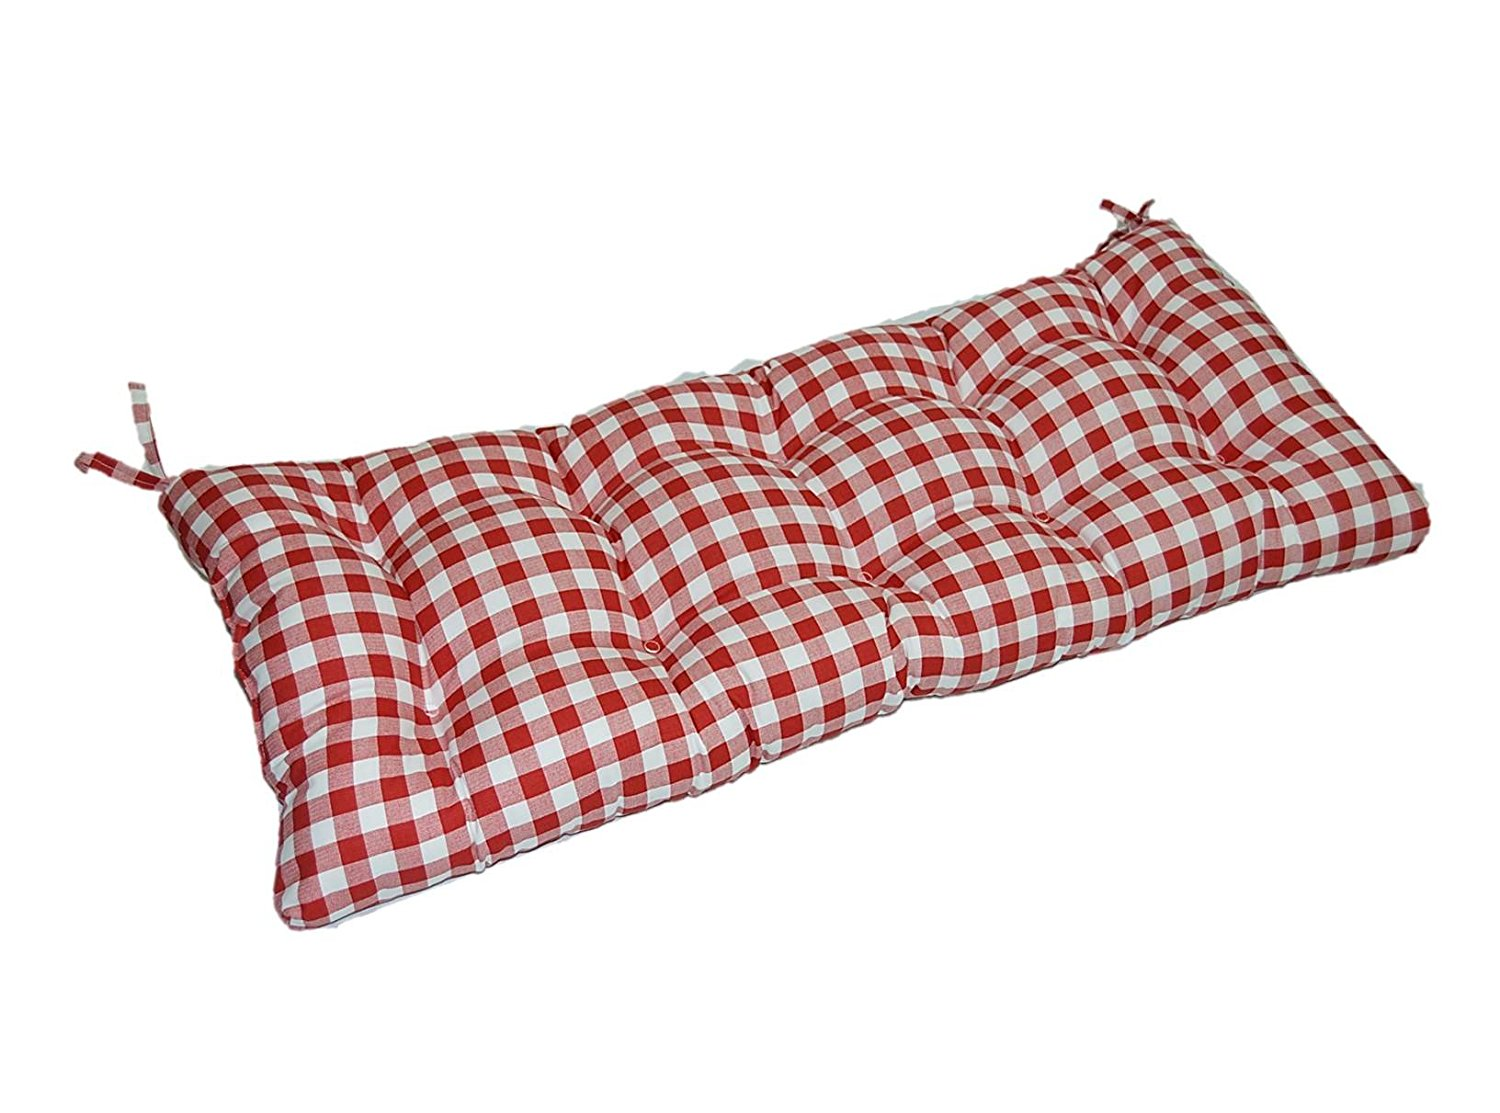 "Red and White Plaid / Country Checkered / Checkerboard Indoor Cotton Tufted Cushion with Ties for Bench, Swing, Glider - Choose Size (44"" x 17"")"